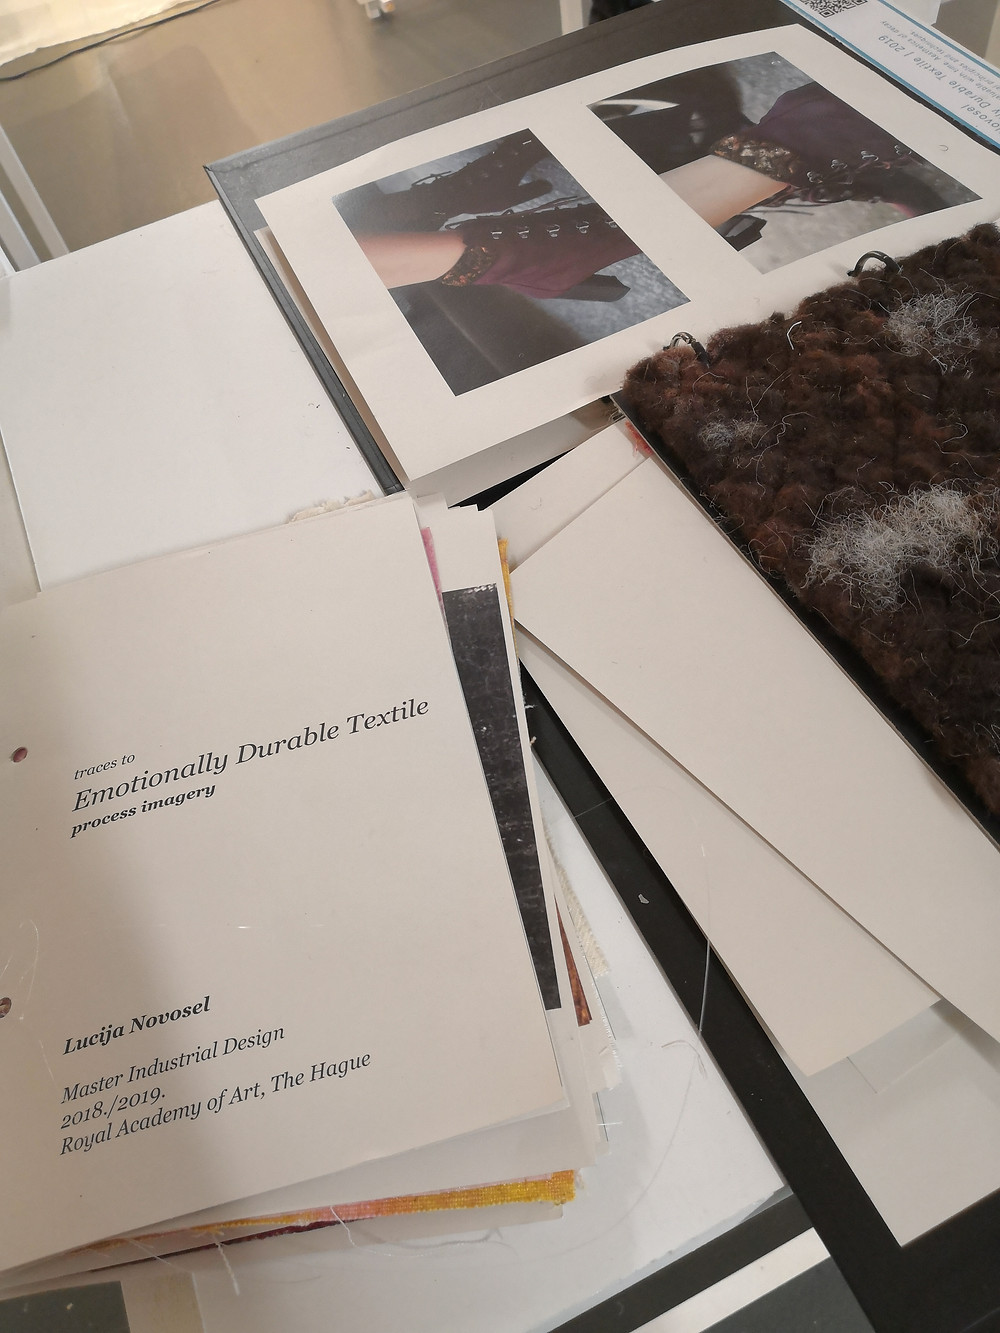 """Papers and materials on top of a table with the title """"Emotionally Durable Textile"""" visible on one of them."""